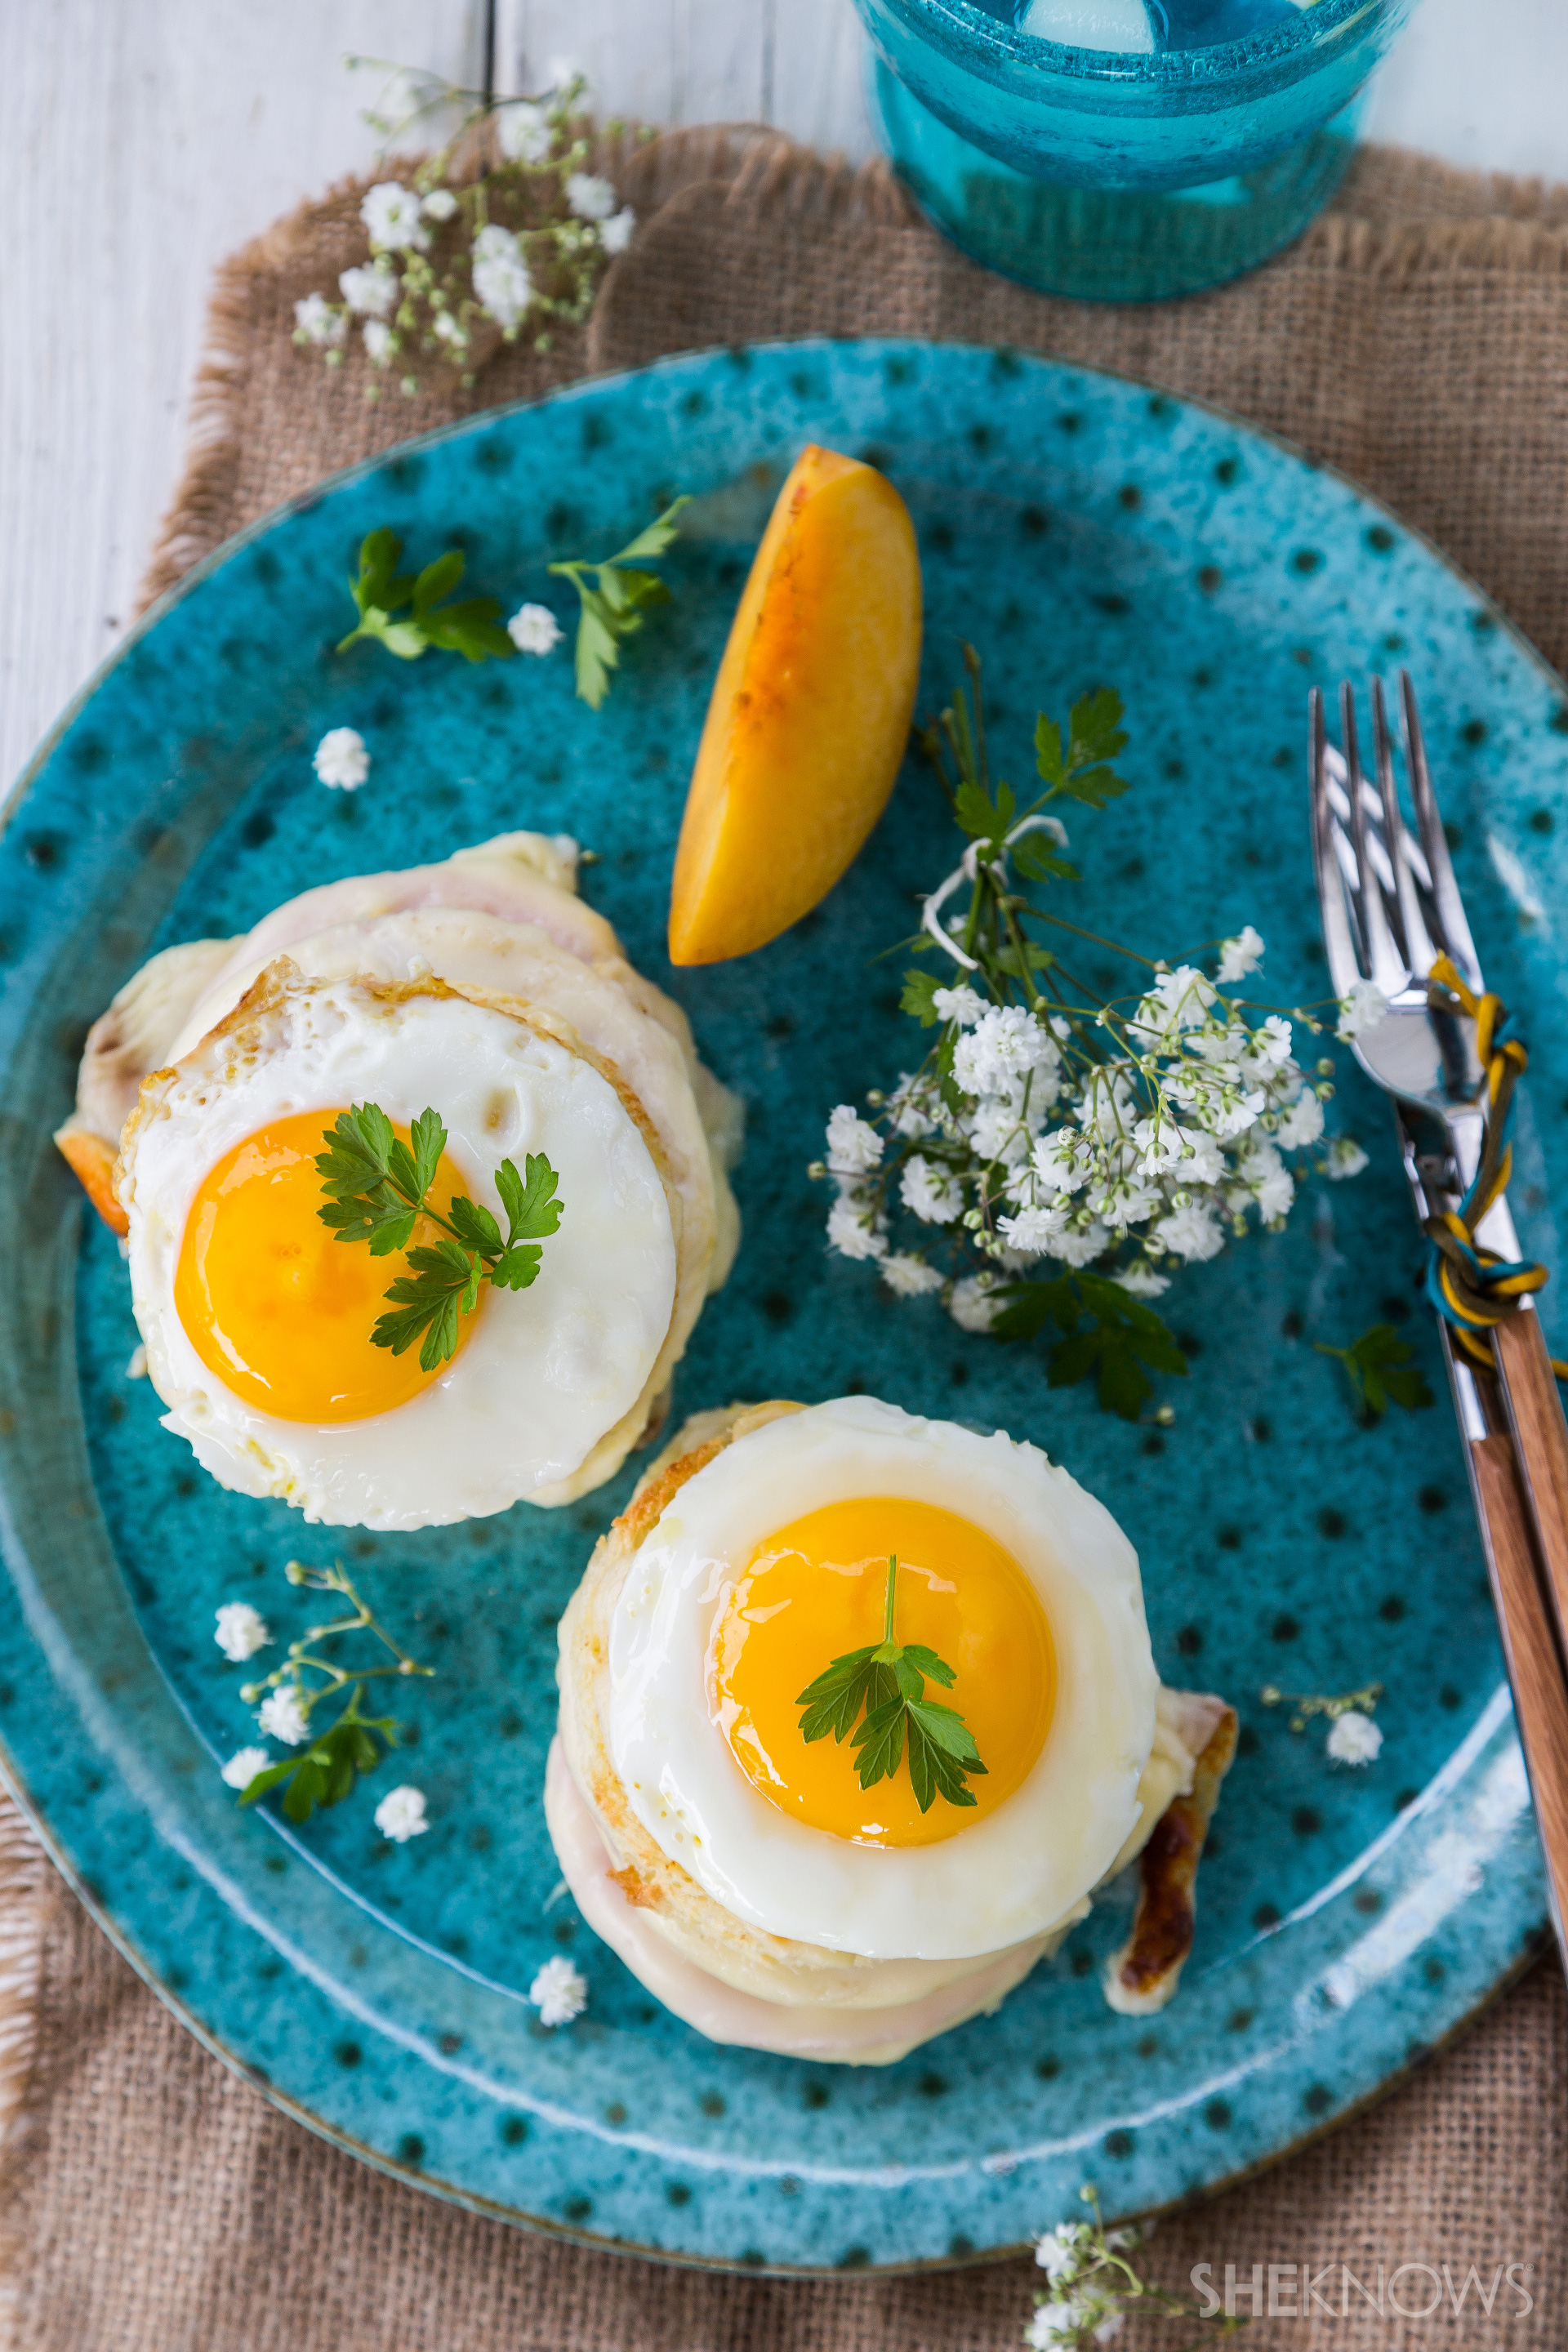 Croque madame with blue cheese recipe